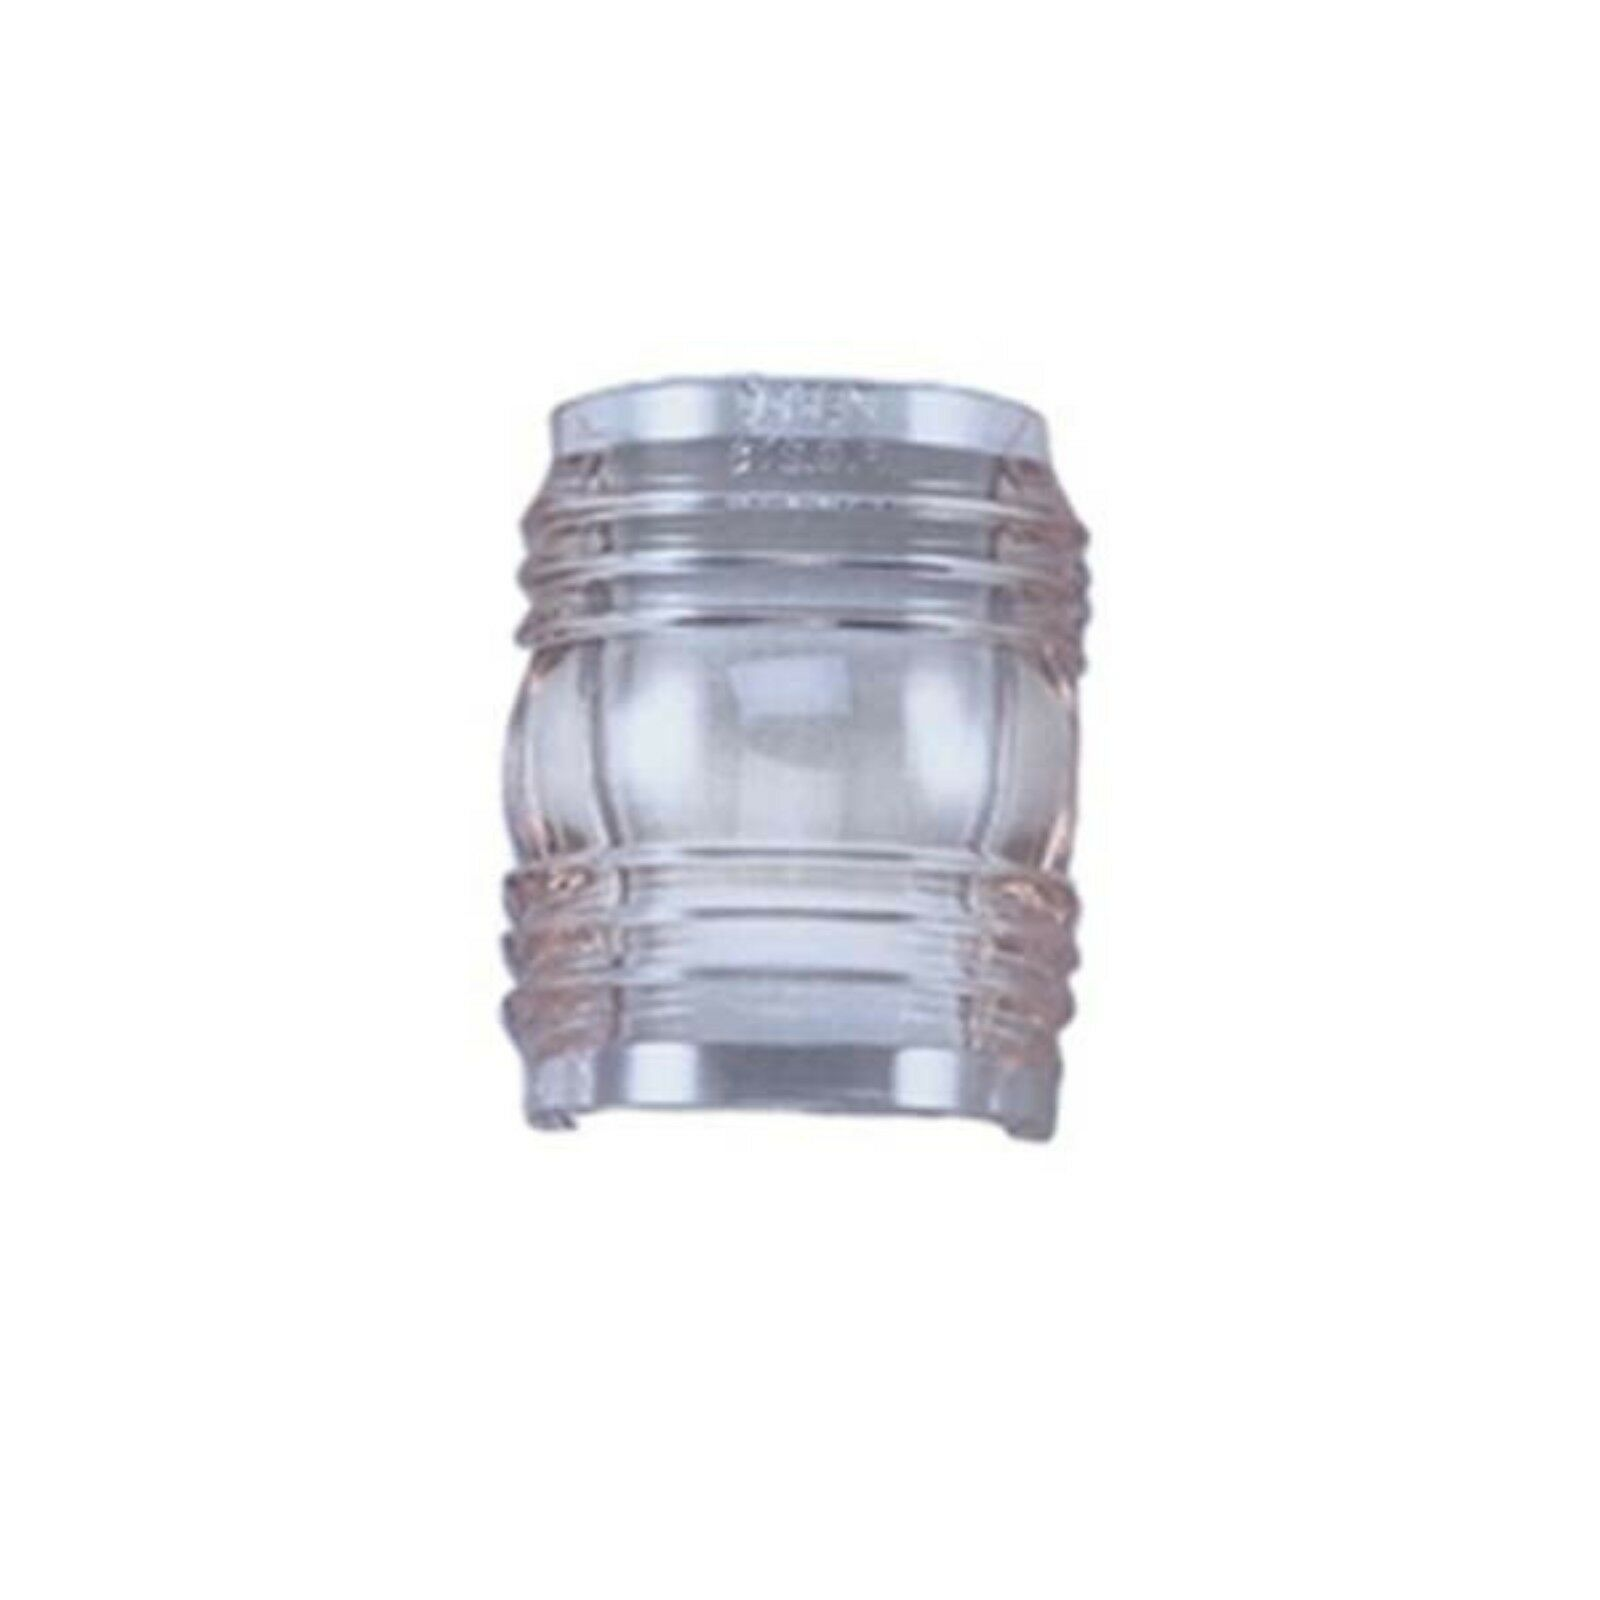 Perko 278DPWHT Spare Lens For Masthead Navigation Light Clear